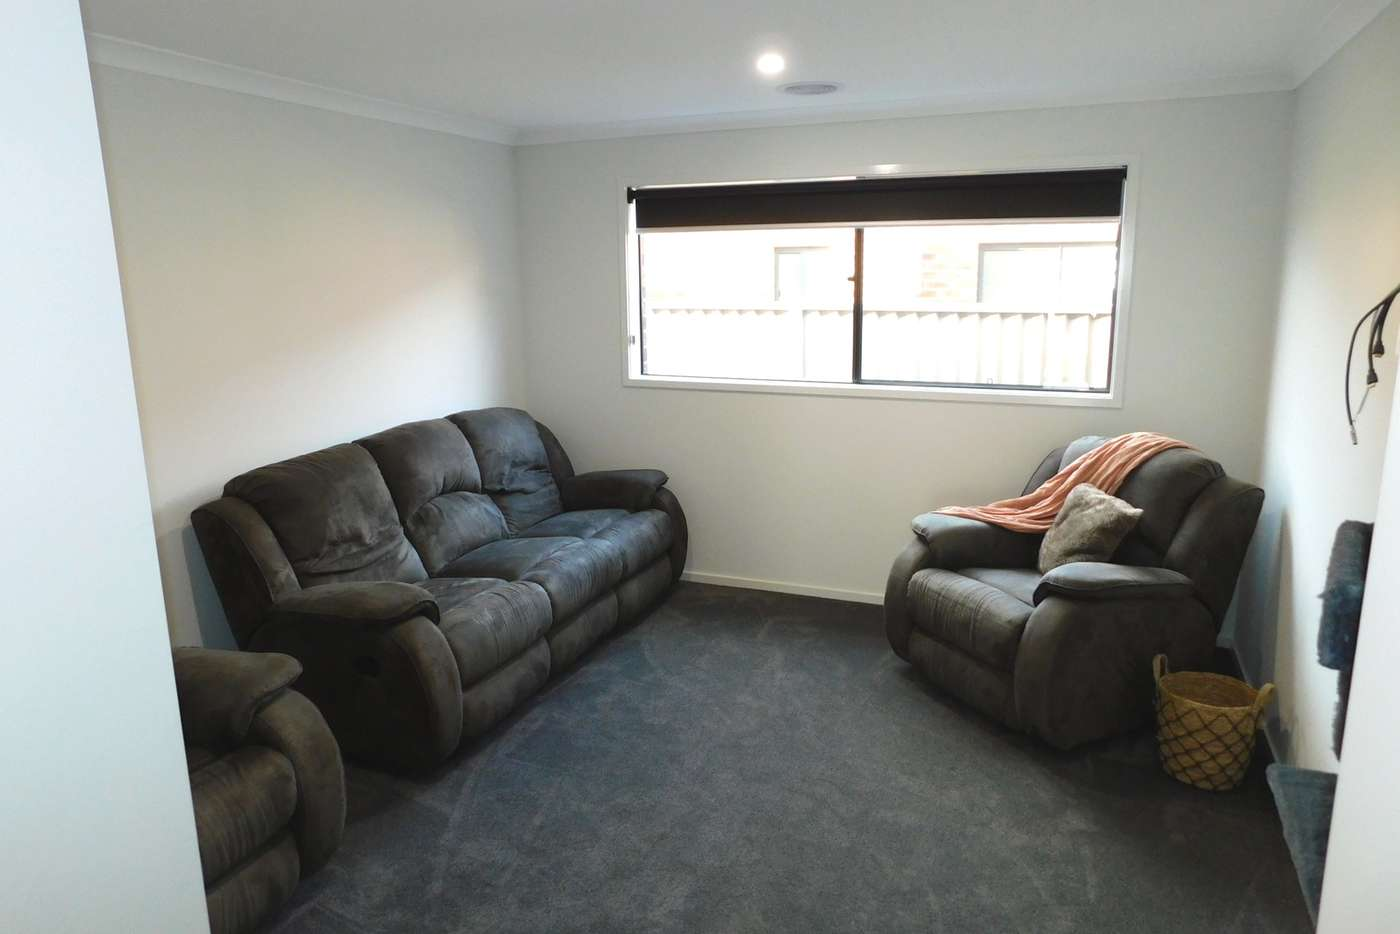 Sixth view of Homely house listing, 17 Bect Street, Sebastopol VIC 3356